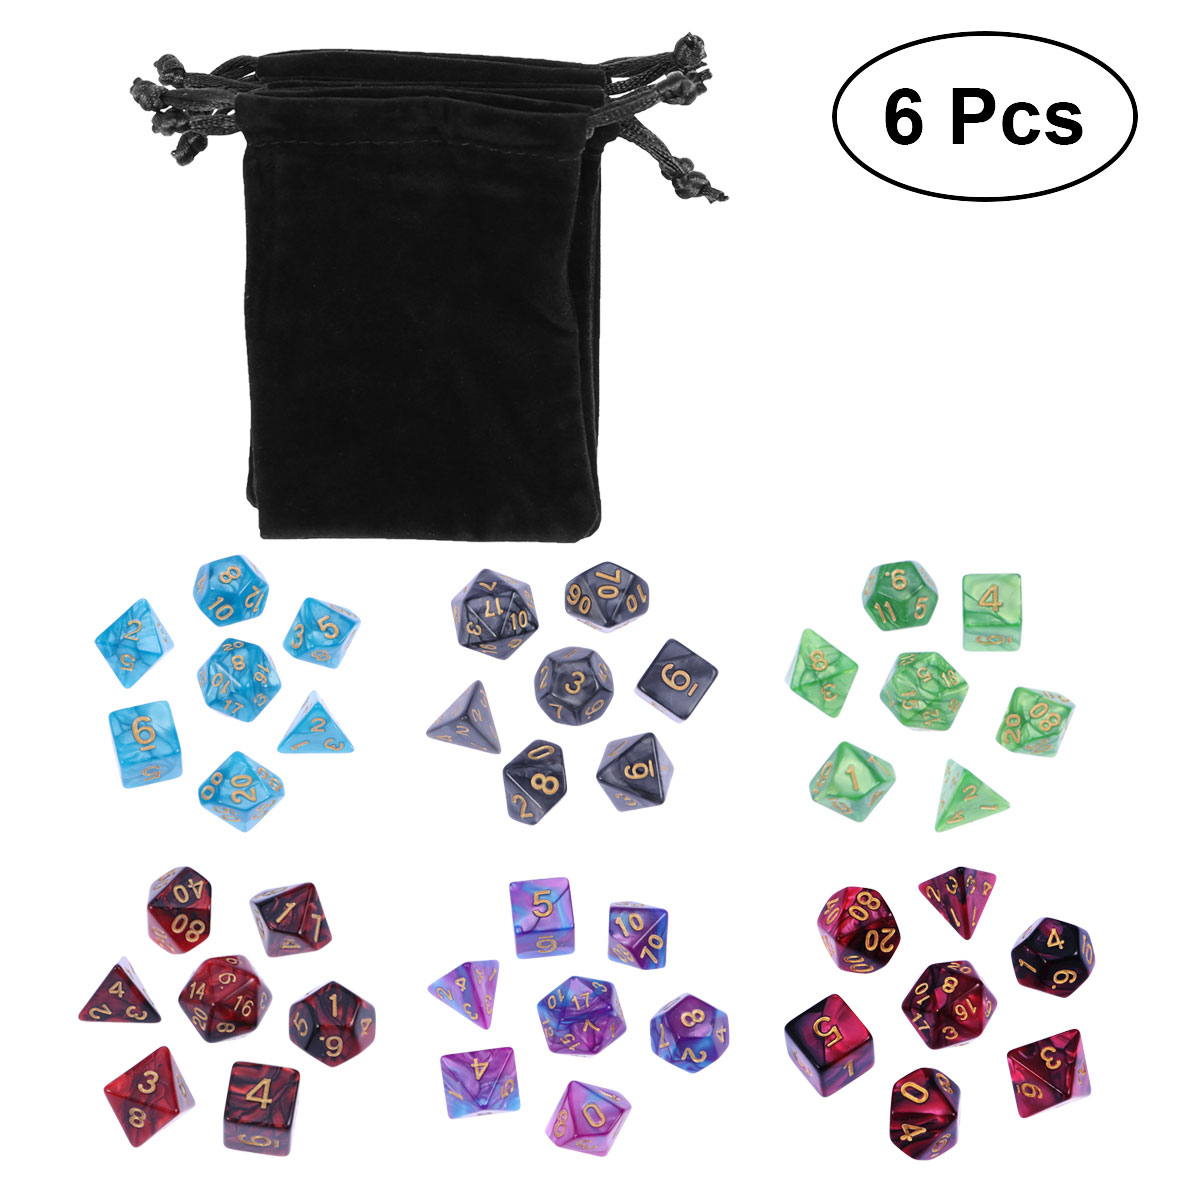 6 X 7 Sets Polyhedral Dice Acrylic Digital Number Game Dice Set For Dungeons And Dragons Party Math Role Table Game Playing